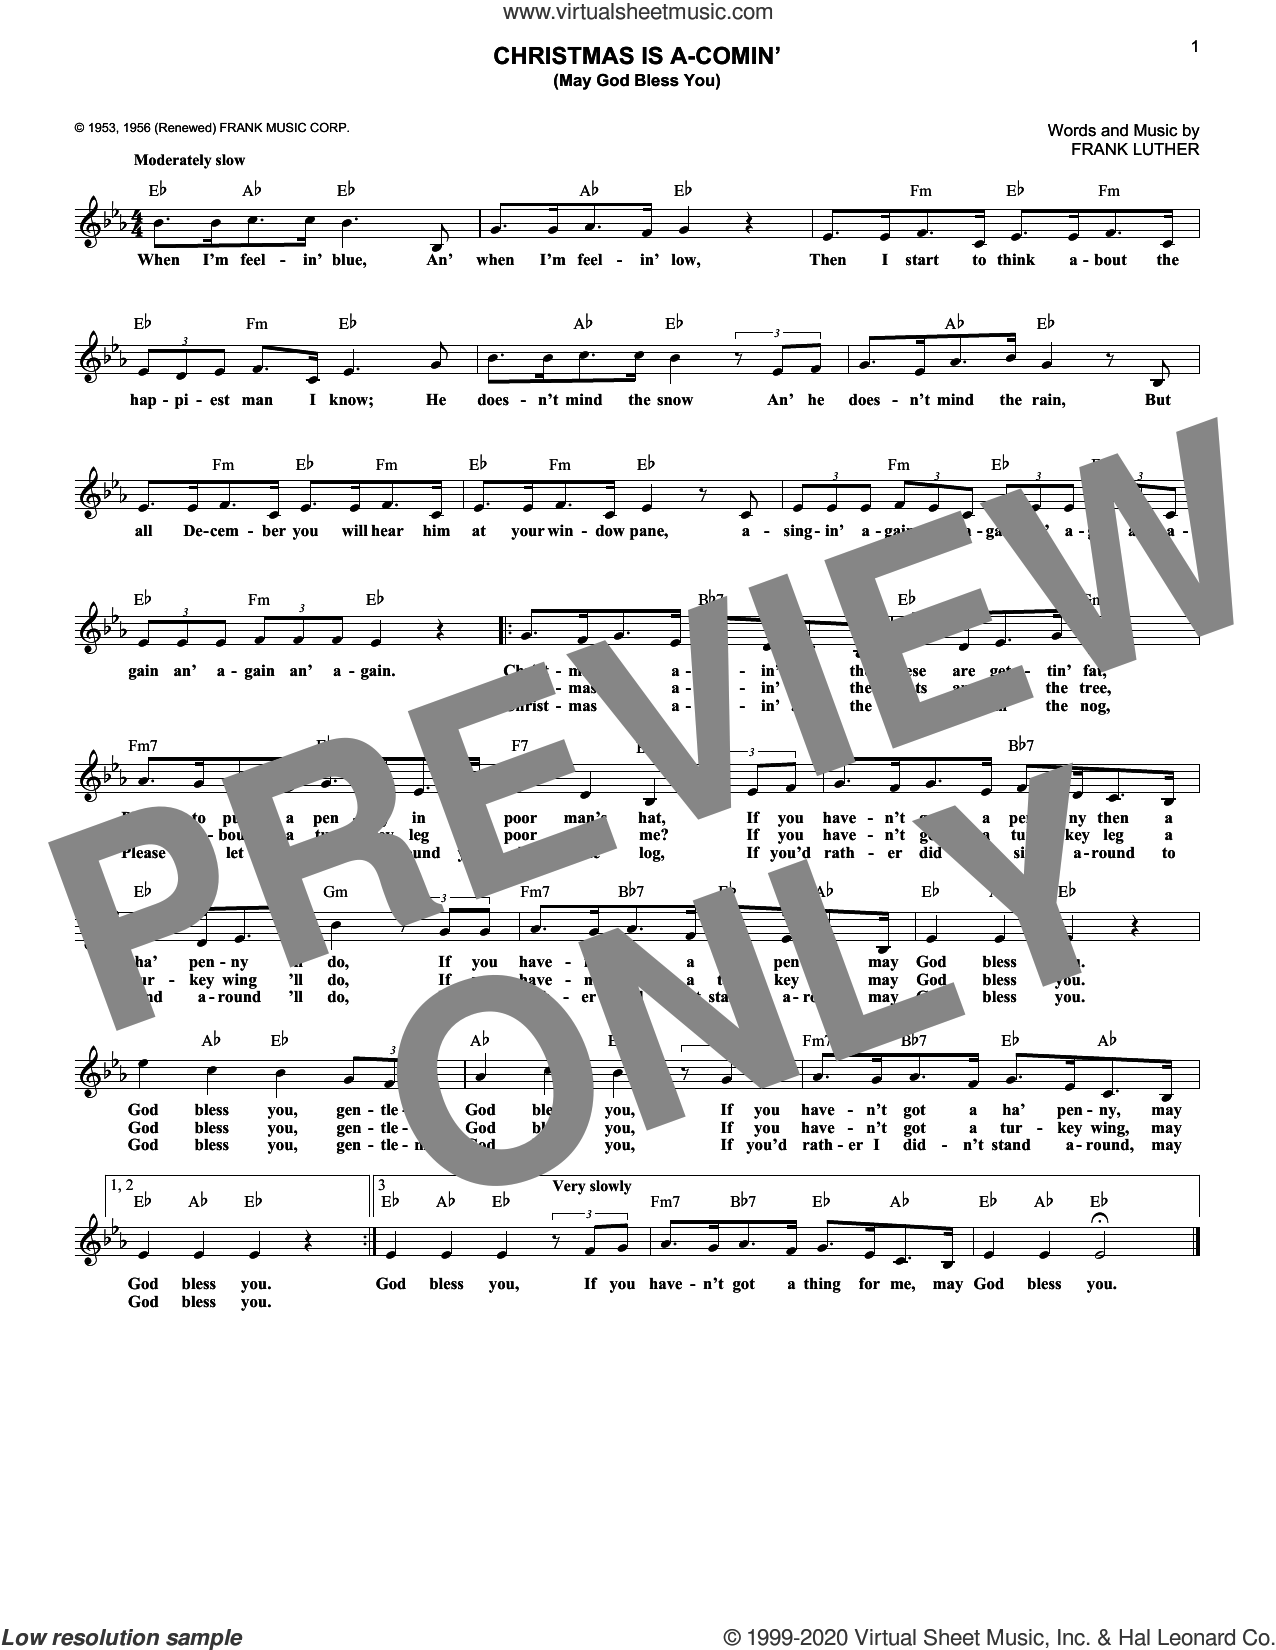 Christmas Is A-Comin' (May God Bless You) sheet music for voice and other instruments (fake book) by Frank Luther, intermediate skill level